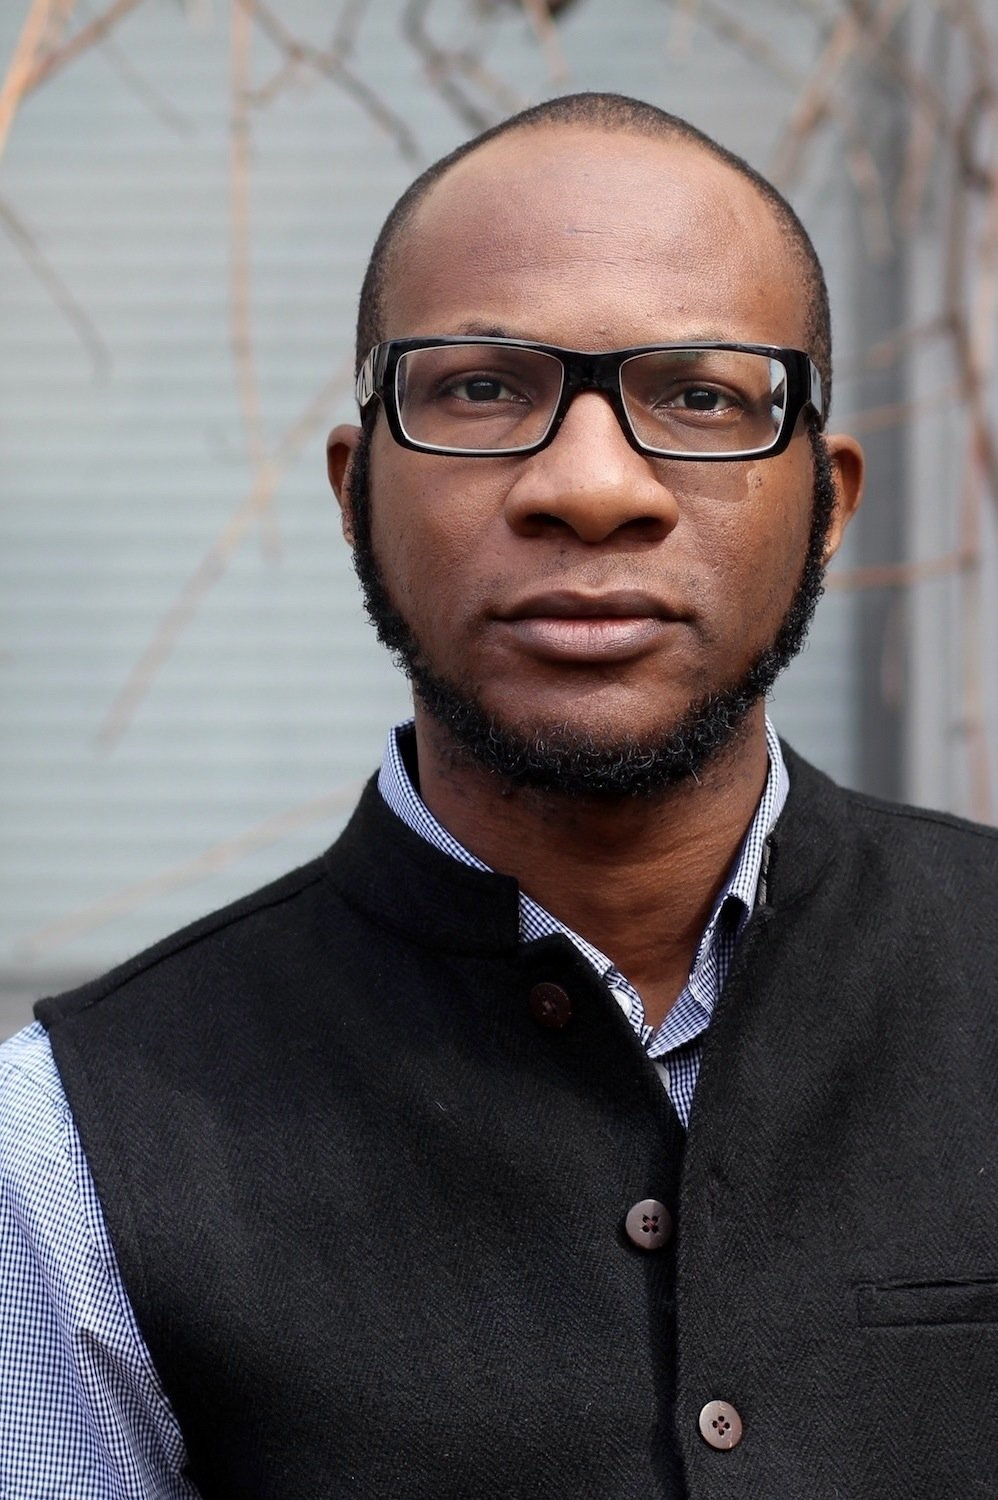 FAB-Book-Review-Every-Day-Is-For-The-Thief-By-Teju-Cole-FAB-Magazine (2)